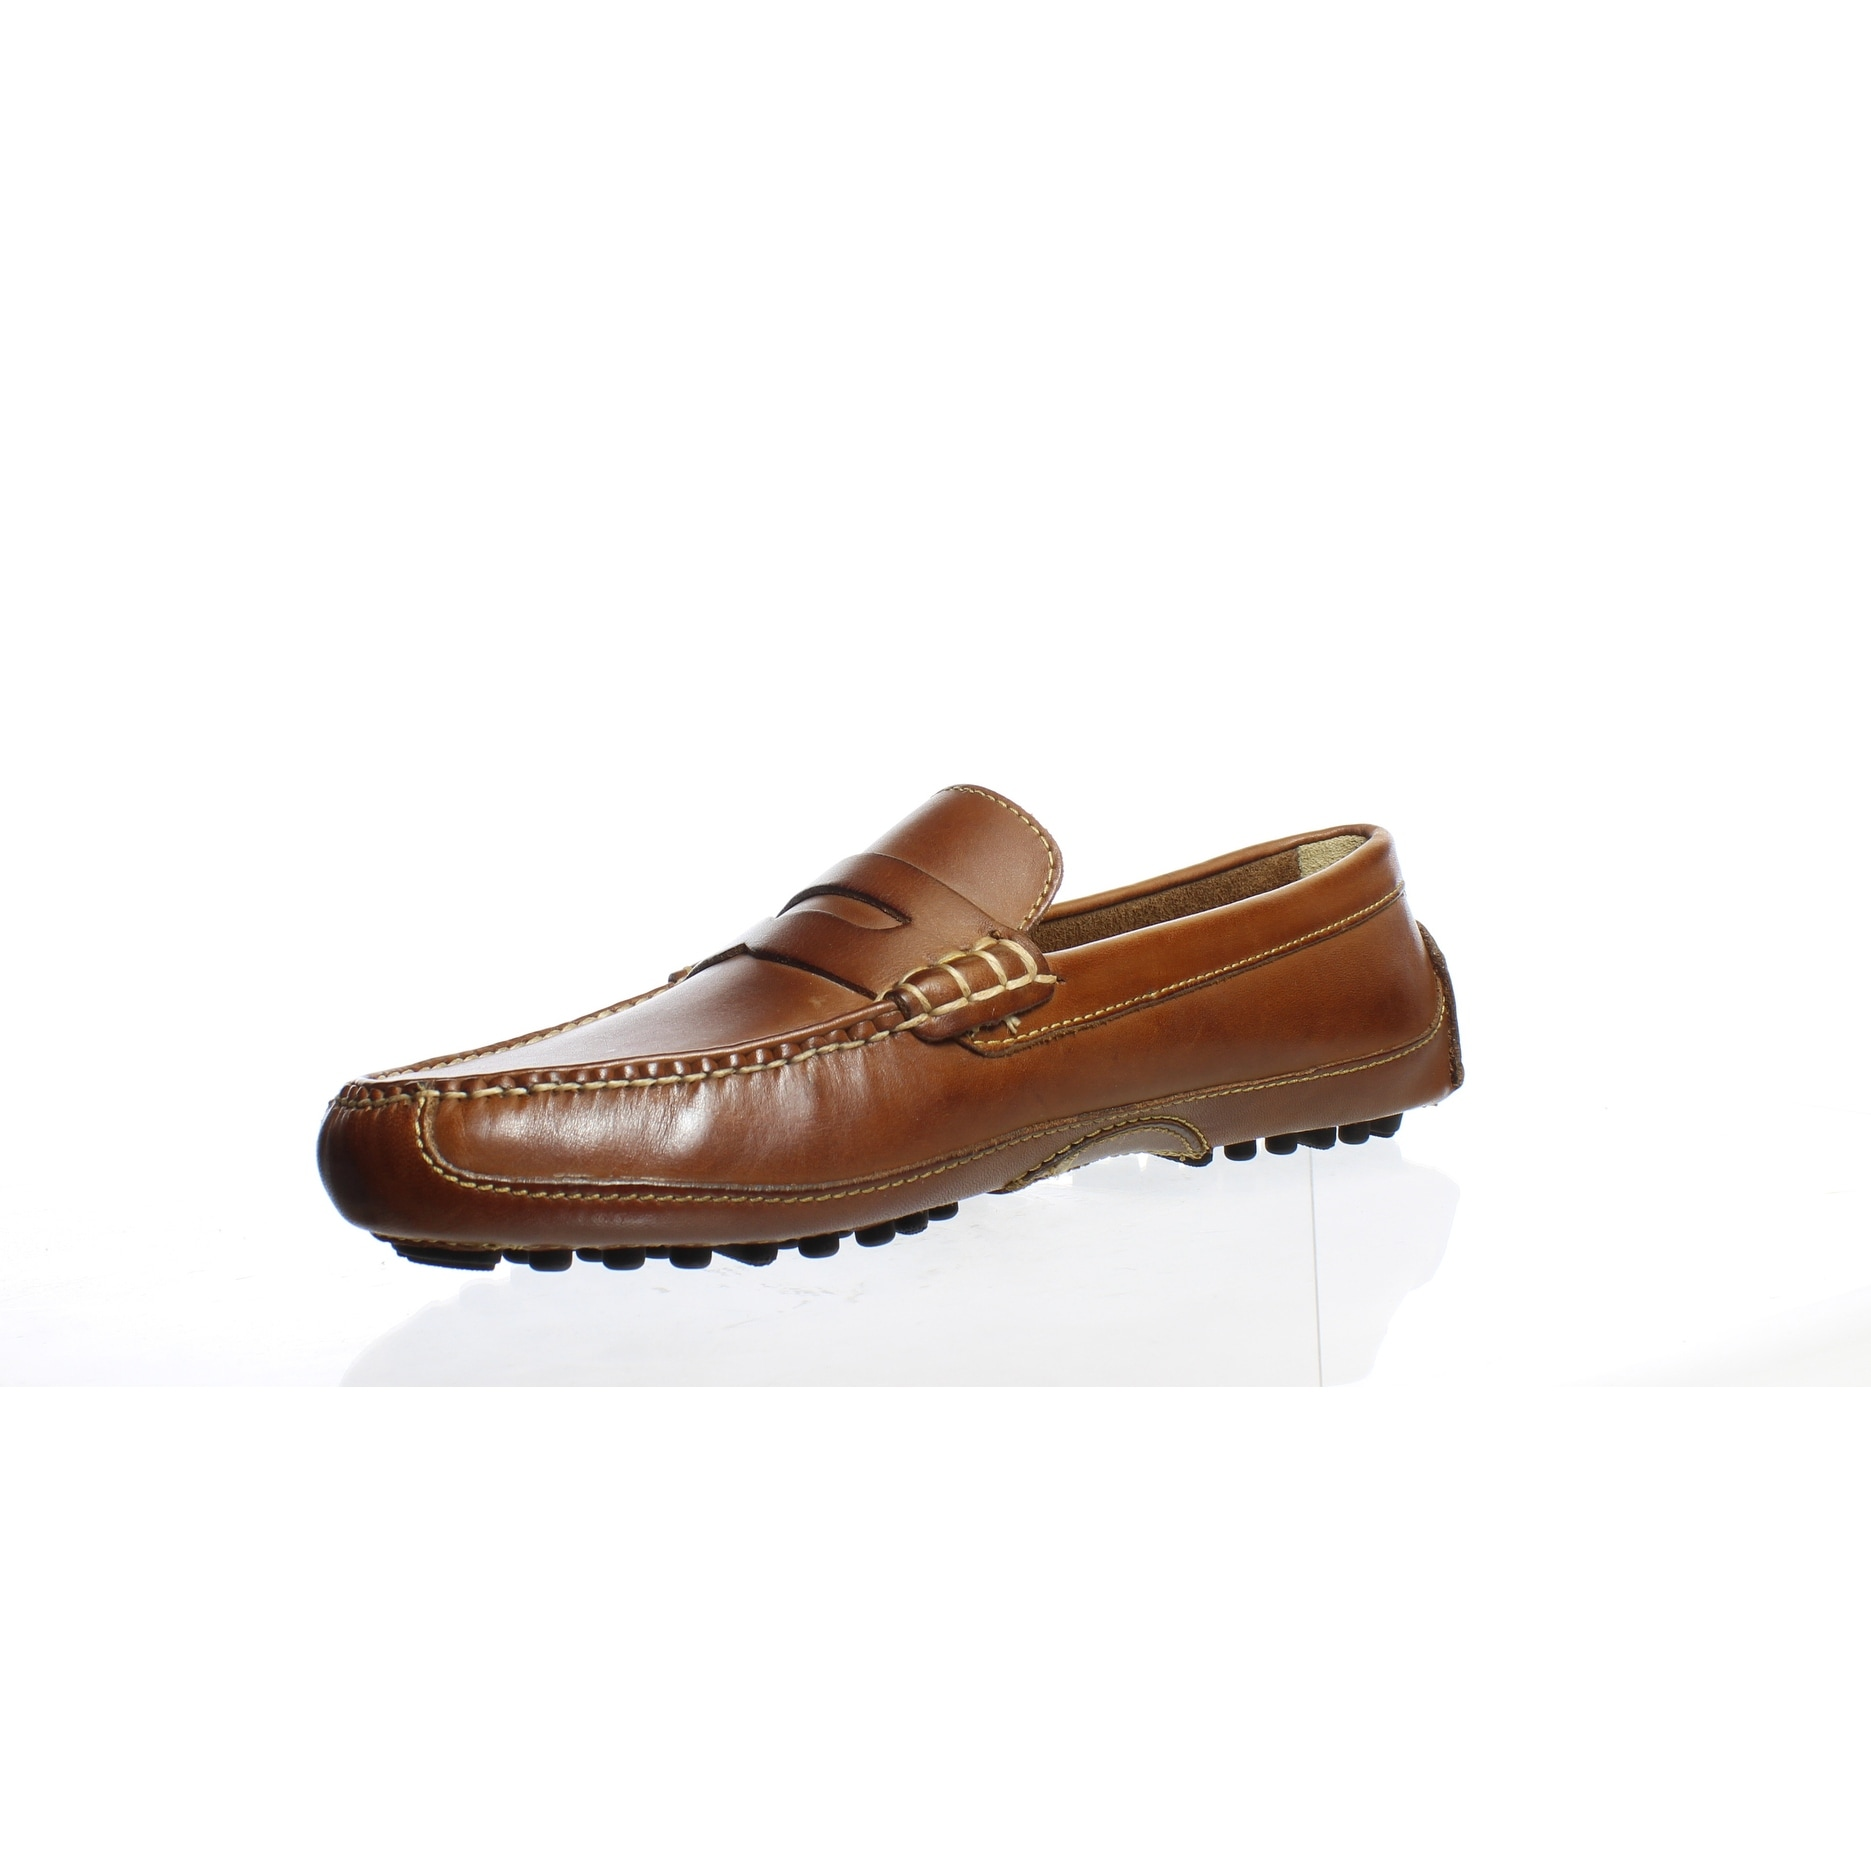 1b77ddb2a0e Shop Cole Haan Mens Grant Canoe Penny Papaya Loafers Size 9.5 - Free  Shipping Today - Overstock - 27980938